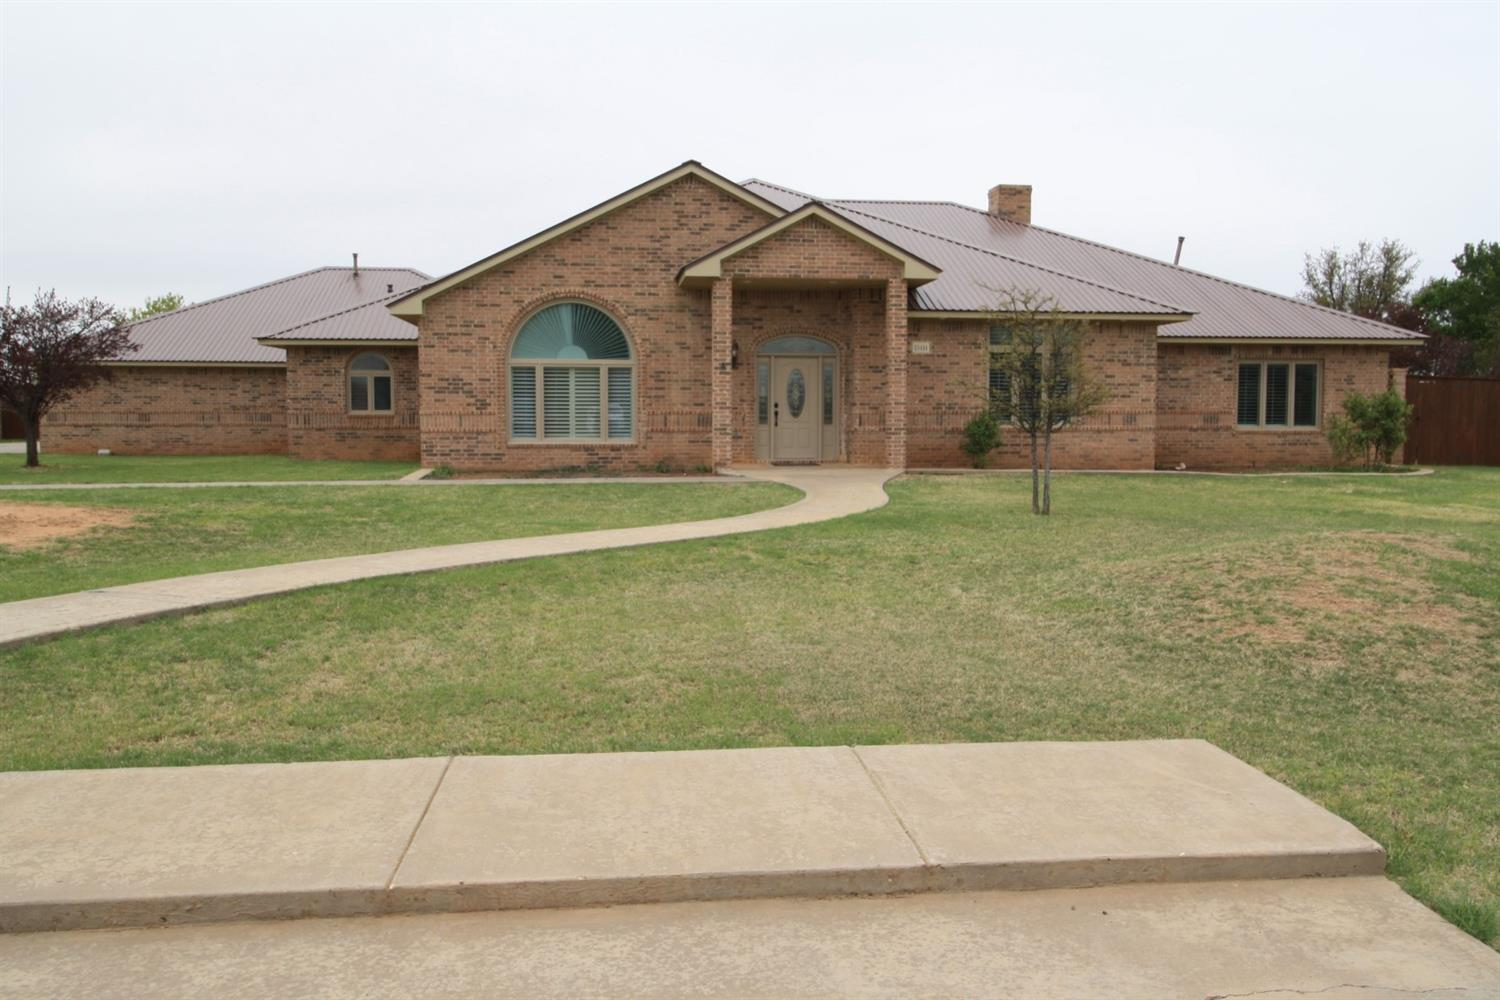 $62,000 BELOW recent appraisal!! This beautiful home in Highland Oaks is a steal ~ 4 Bedrooms ~ 3.5 Bathrooms ~ 3 Car Garage ~ .9 Acres ~ Office w/ Built-in's ~ Formal Dining Area ~ Bar w/ Kegerator & Wine Fridge ~ Large Kitchen w/ Gas Stove-top ~ Granite Counter-tops ~ Wine Rack ~ Huge Walk-in Pantry ~ Open Living Room With Plenty of Room For Family Gatherings ~ Isolated Master Suite ~ Spa Like Master Bath ~ Master Closet Wraps Around the  Tub ~ 3 Large Guest Bedrooms and 2 Additional Bathrooms ~ Basement Has Brick Walls & Storage ~ Utility Room Has More Storage Than You Know What to do With....Sink, 2 Walk-In Pantries & Room For Freezer ~ Walk Outside into the Gorgeous Oasis...Huge Covered Patio ~ Indoor/Outdoor Pool w/ Slide, Waterfall, Bar, & Bathroom!!  Oh, And Did I Mention..INSTANT Equity!!  Seller offering $10,000 in flooring allowance!